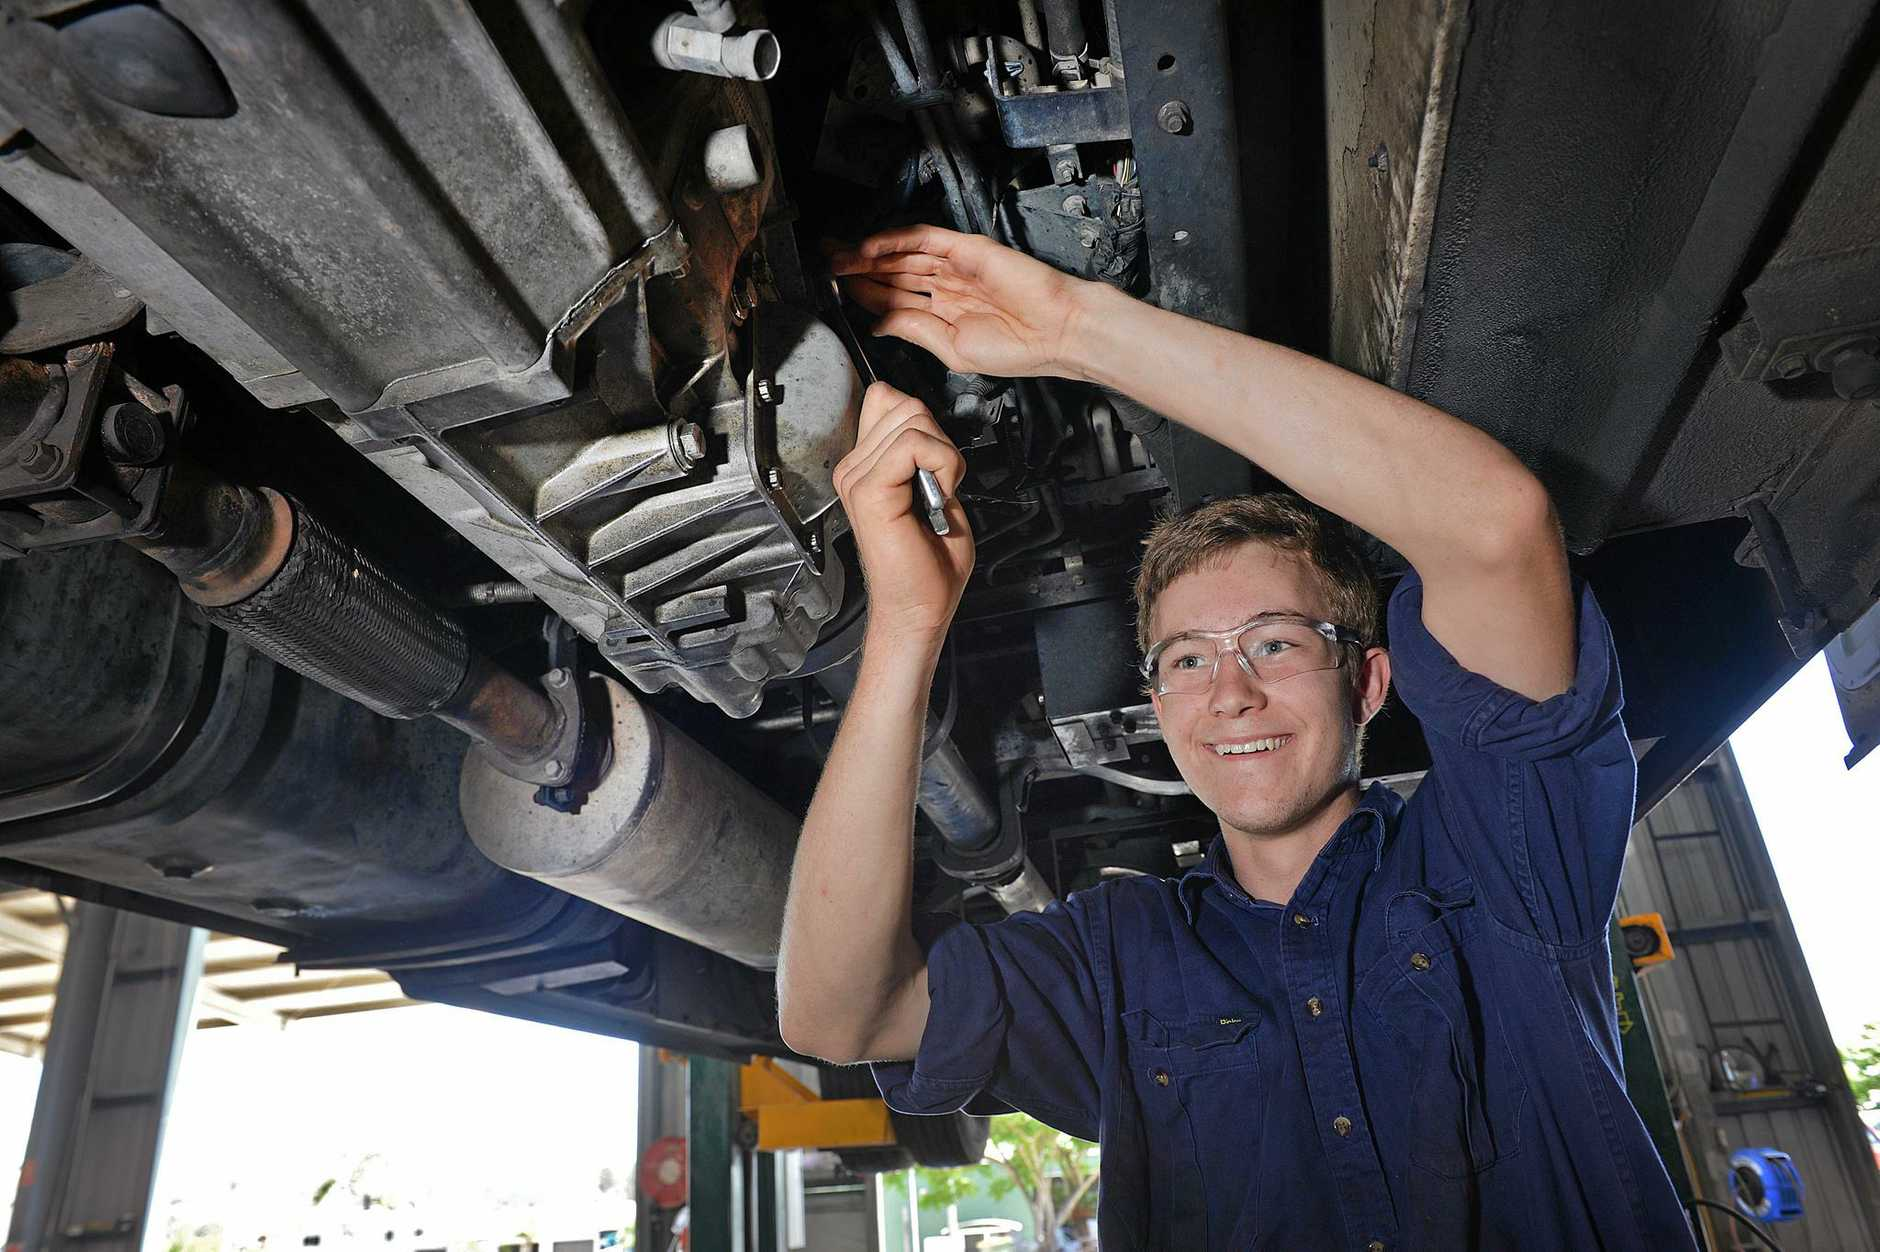 WYNNING WAYS: Brian Wynn says his diesel mechanic apprenticeship has opened up his future, thanks to Polleys Coaches and a school-based start to his training.